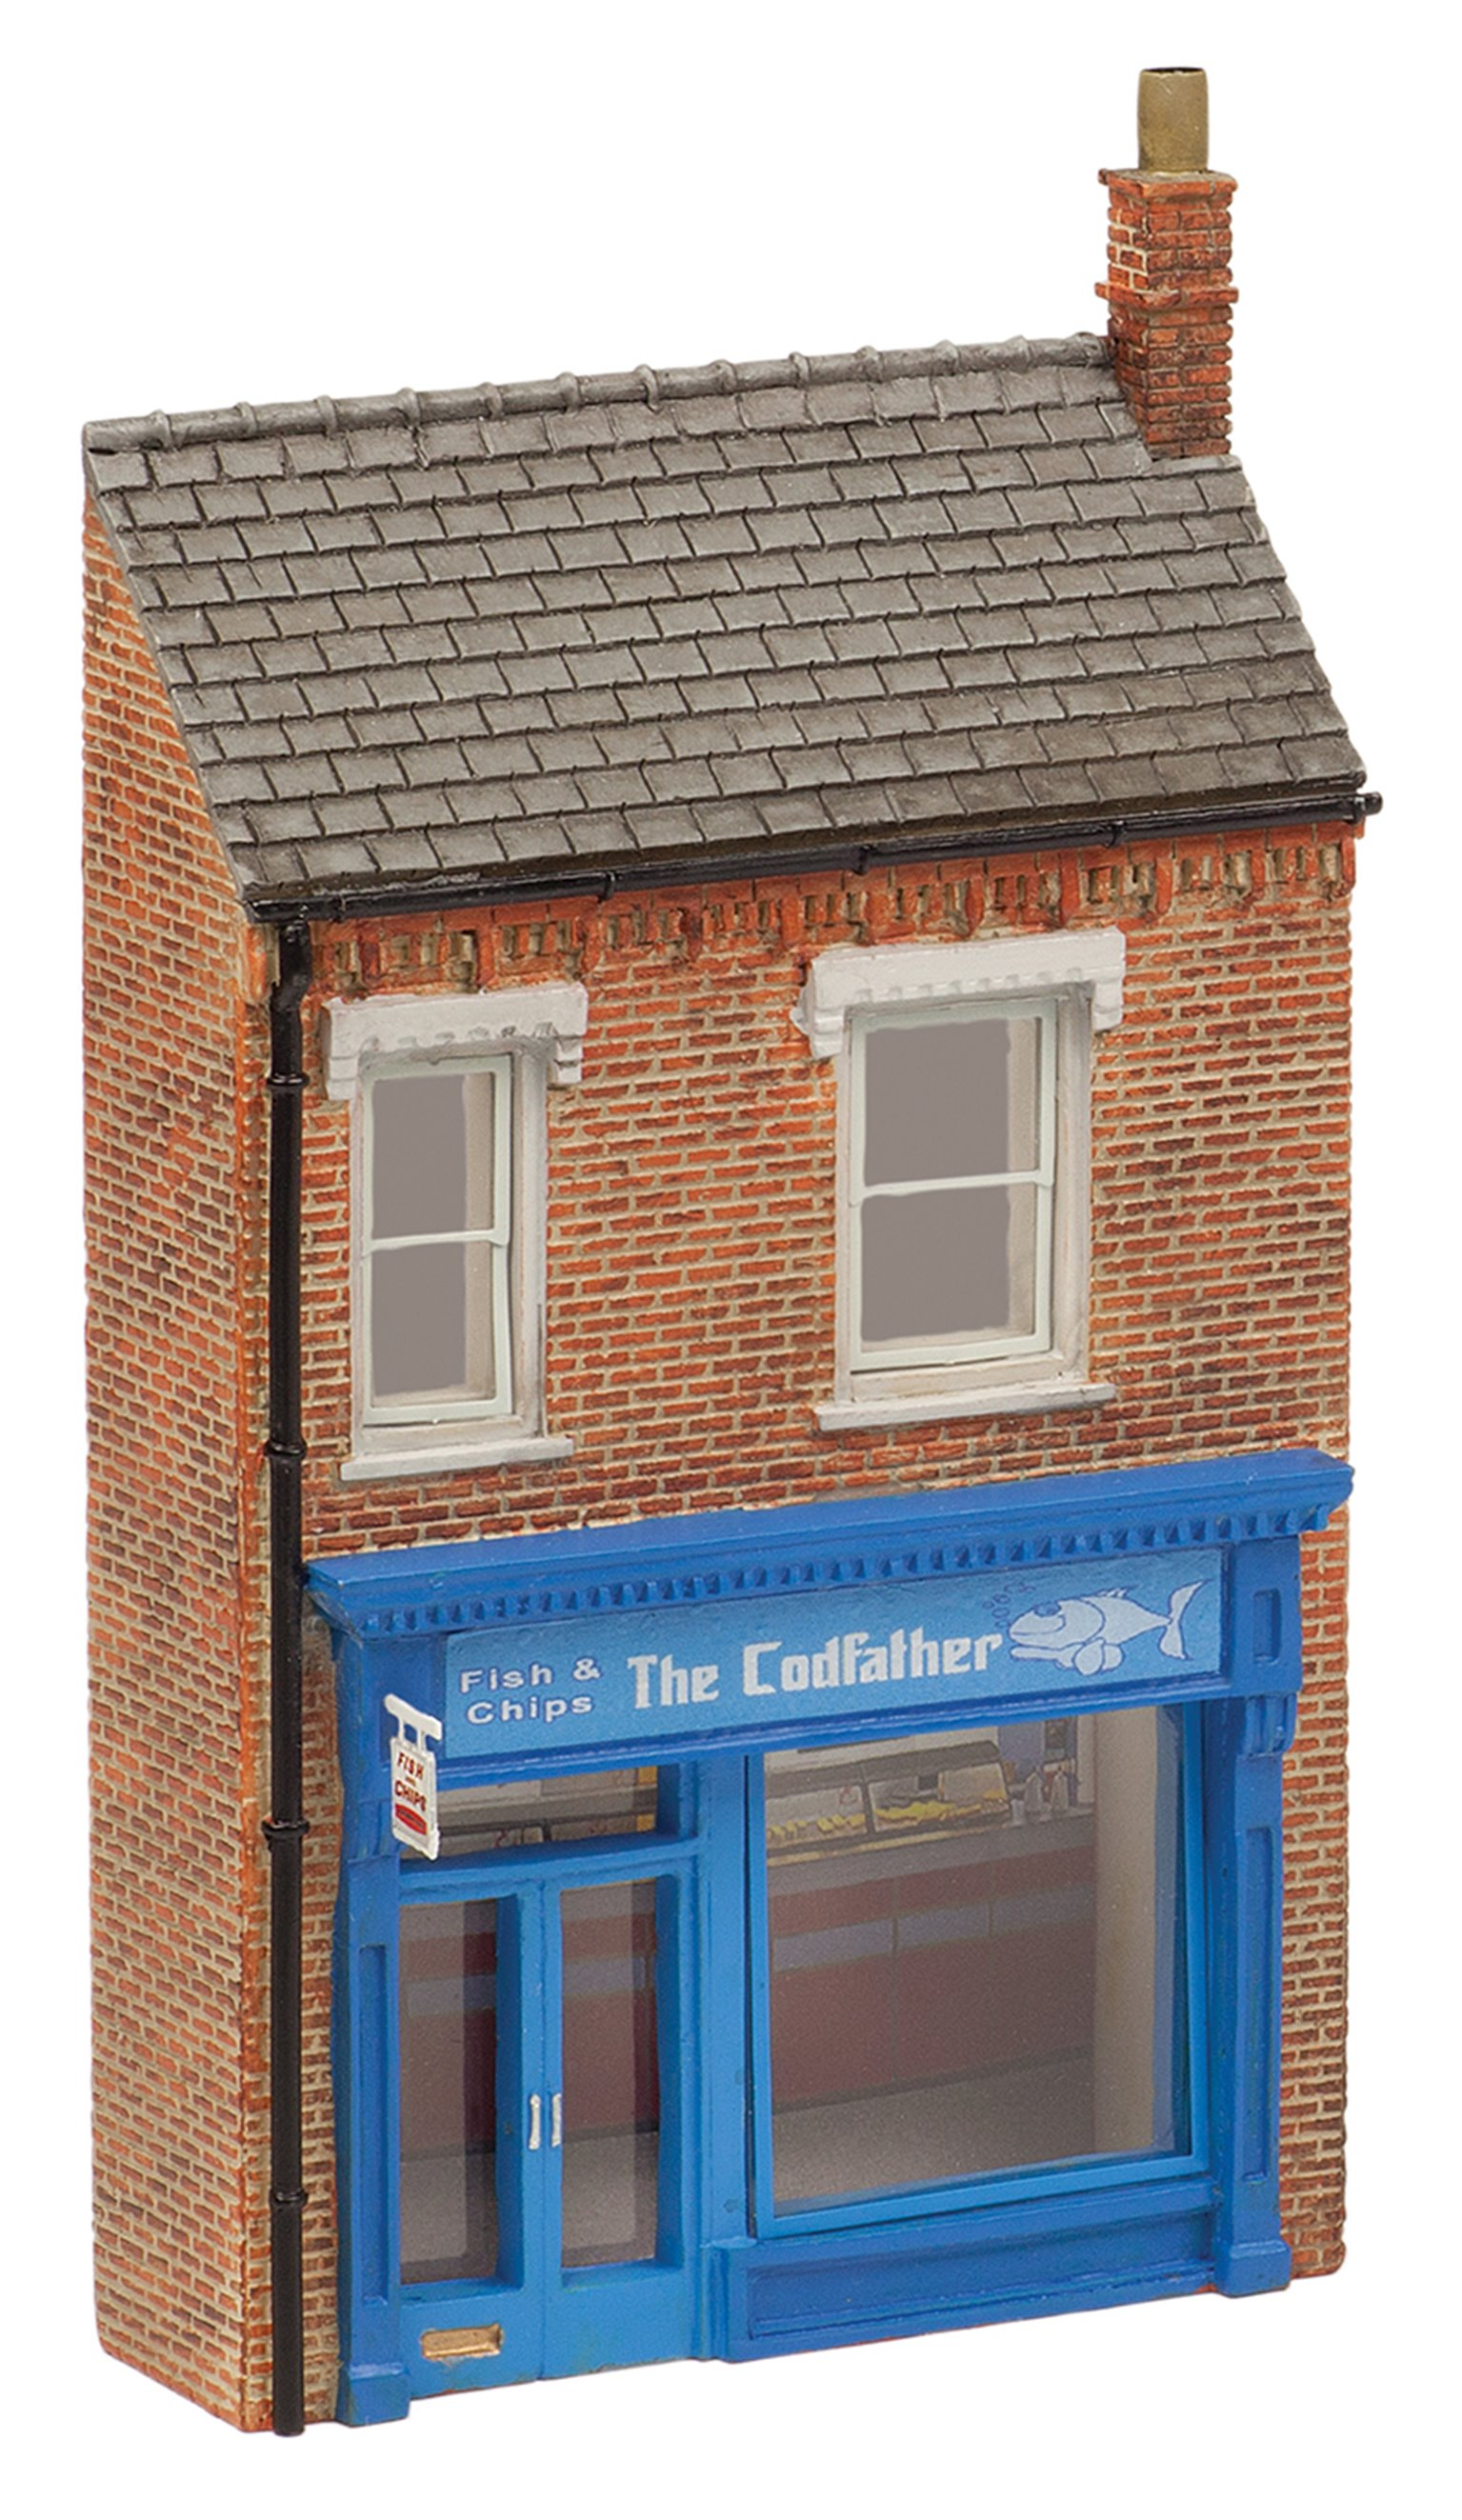 Low Relief 'The Cod Father' Fish & Chip Shop *2017 Range*